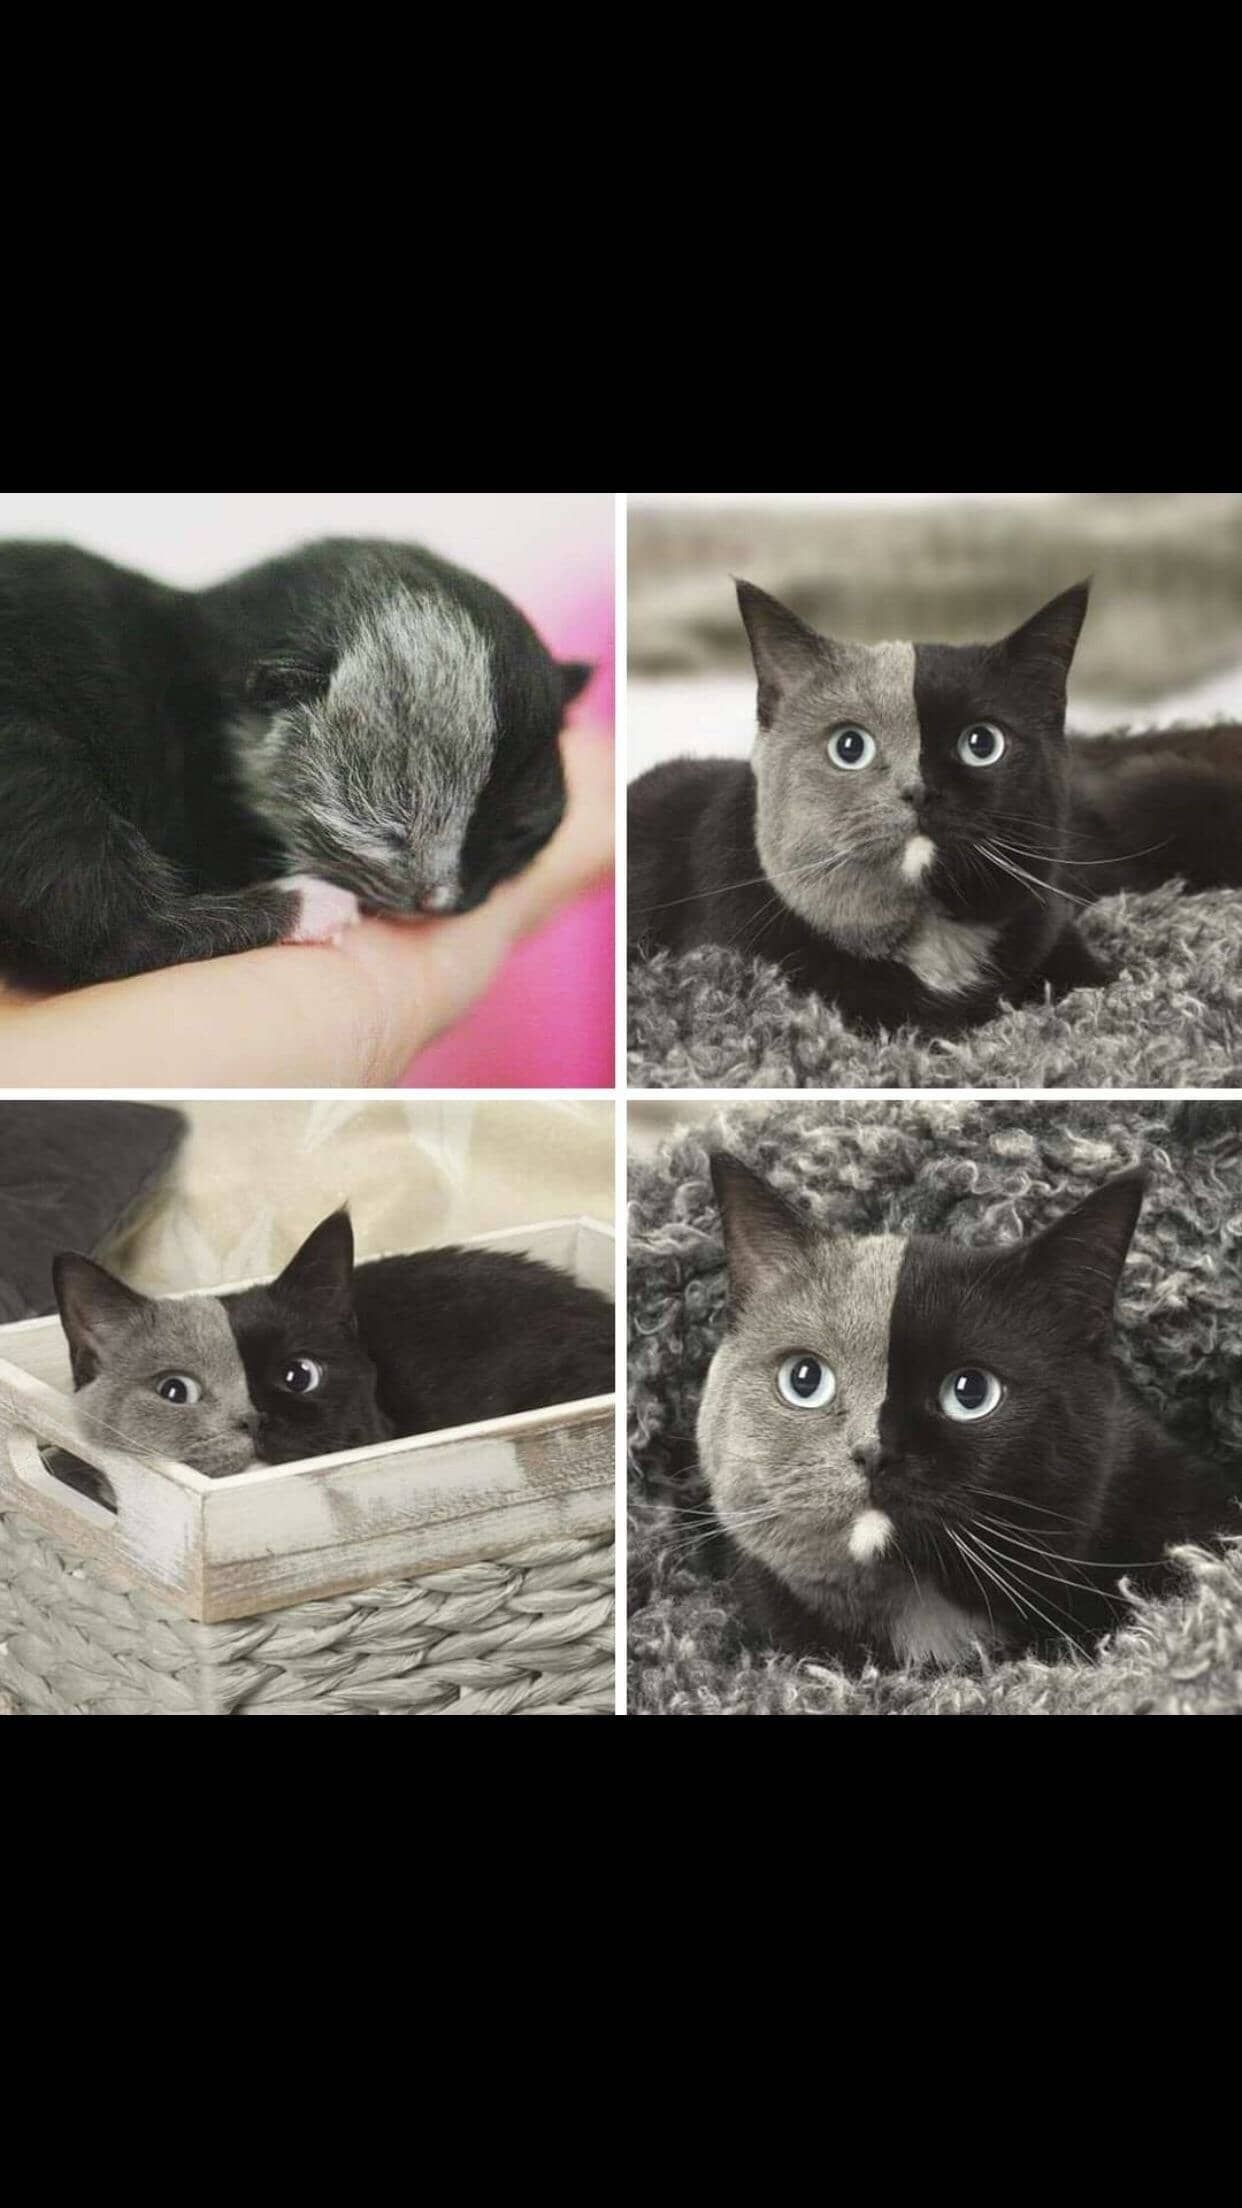 Rare Kitten With Different Face Colours On Catmeme Catsarefunny Funcats Funnycat Funnycatmeme Funnycats F Kitten Pictures Cute Baby Animals Cute Animals